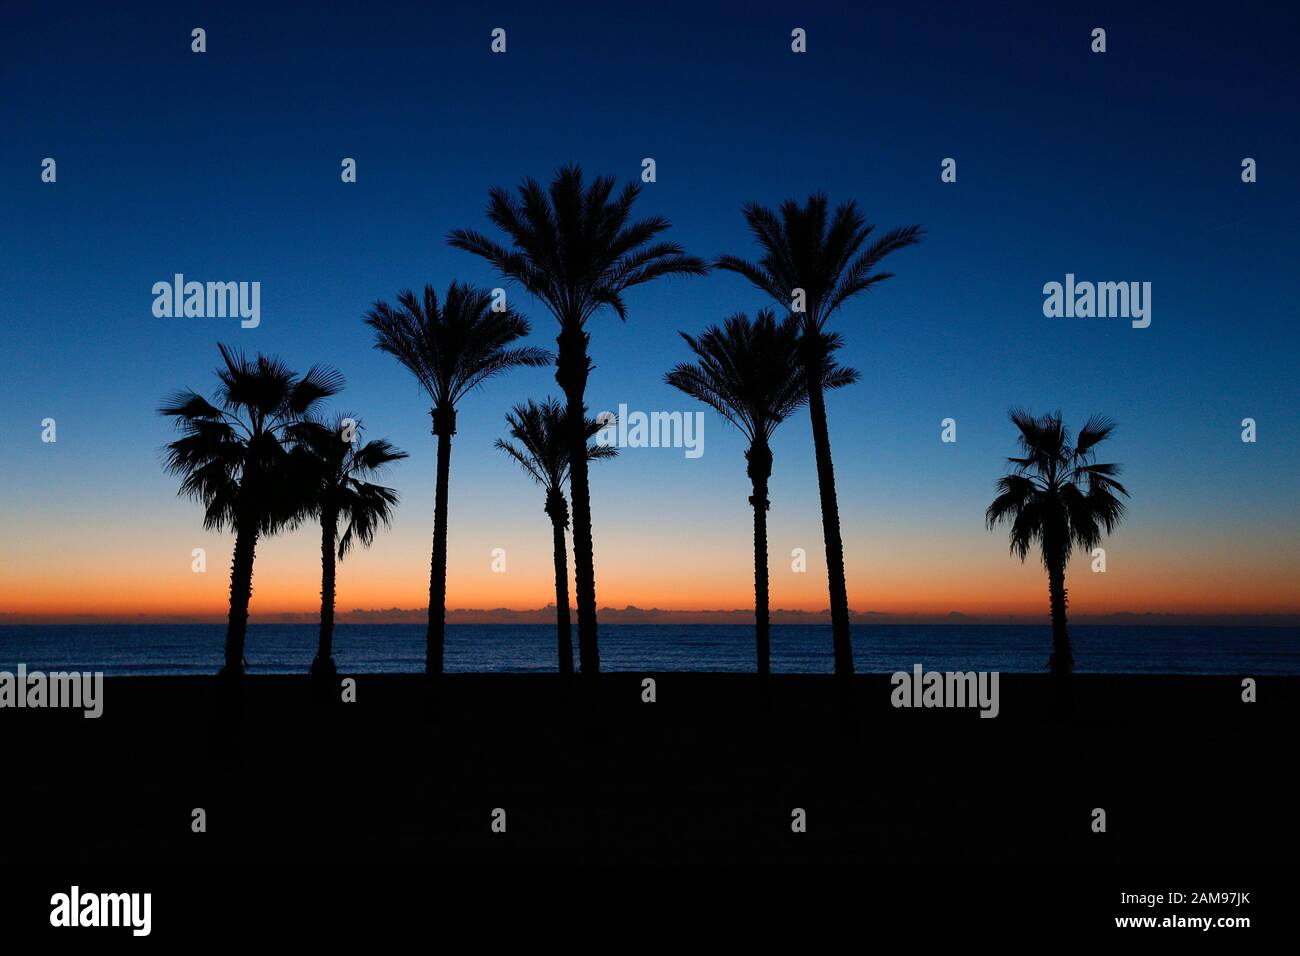 Roquetas de Mar, Almeria, Spain. 12 Jan, 2020. Dawn breaks over the horizon where Palm trees on the beach look out over the Mediterranean Sea. ©Paul Lawrenson 2019, Photo Credit: Paul Lawrenson/Alamy Live News Stock Photo